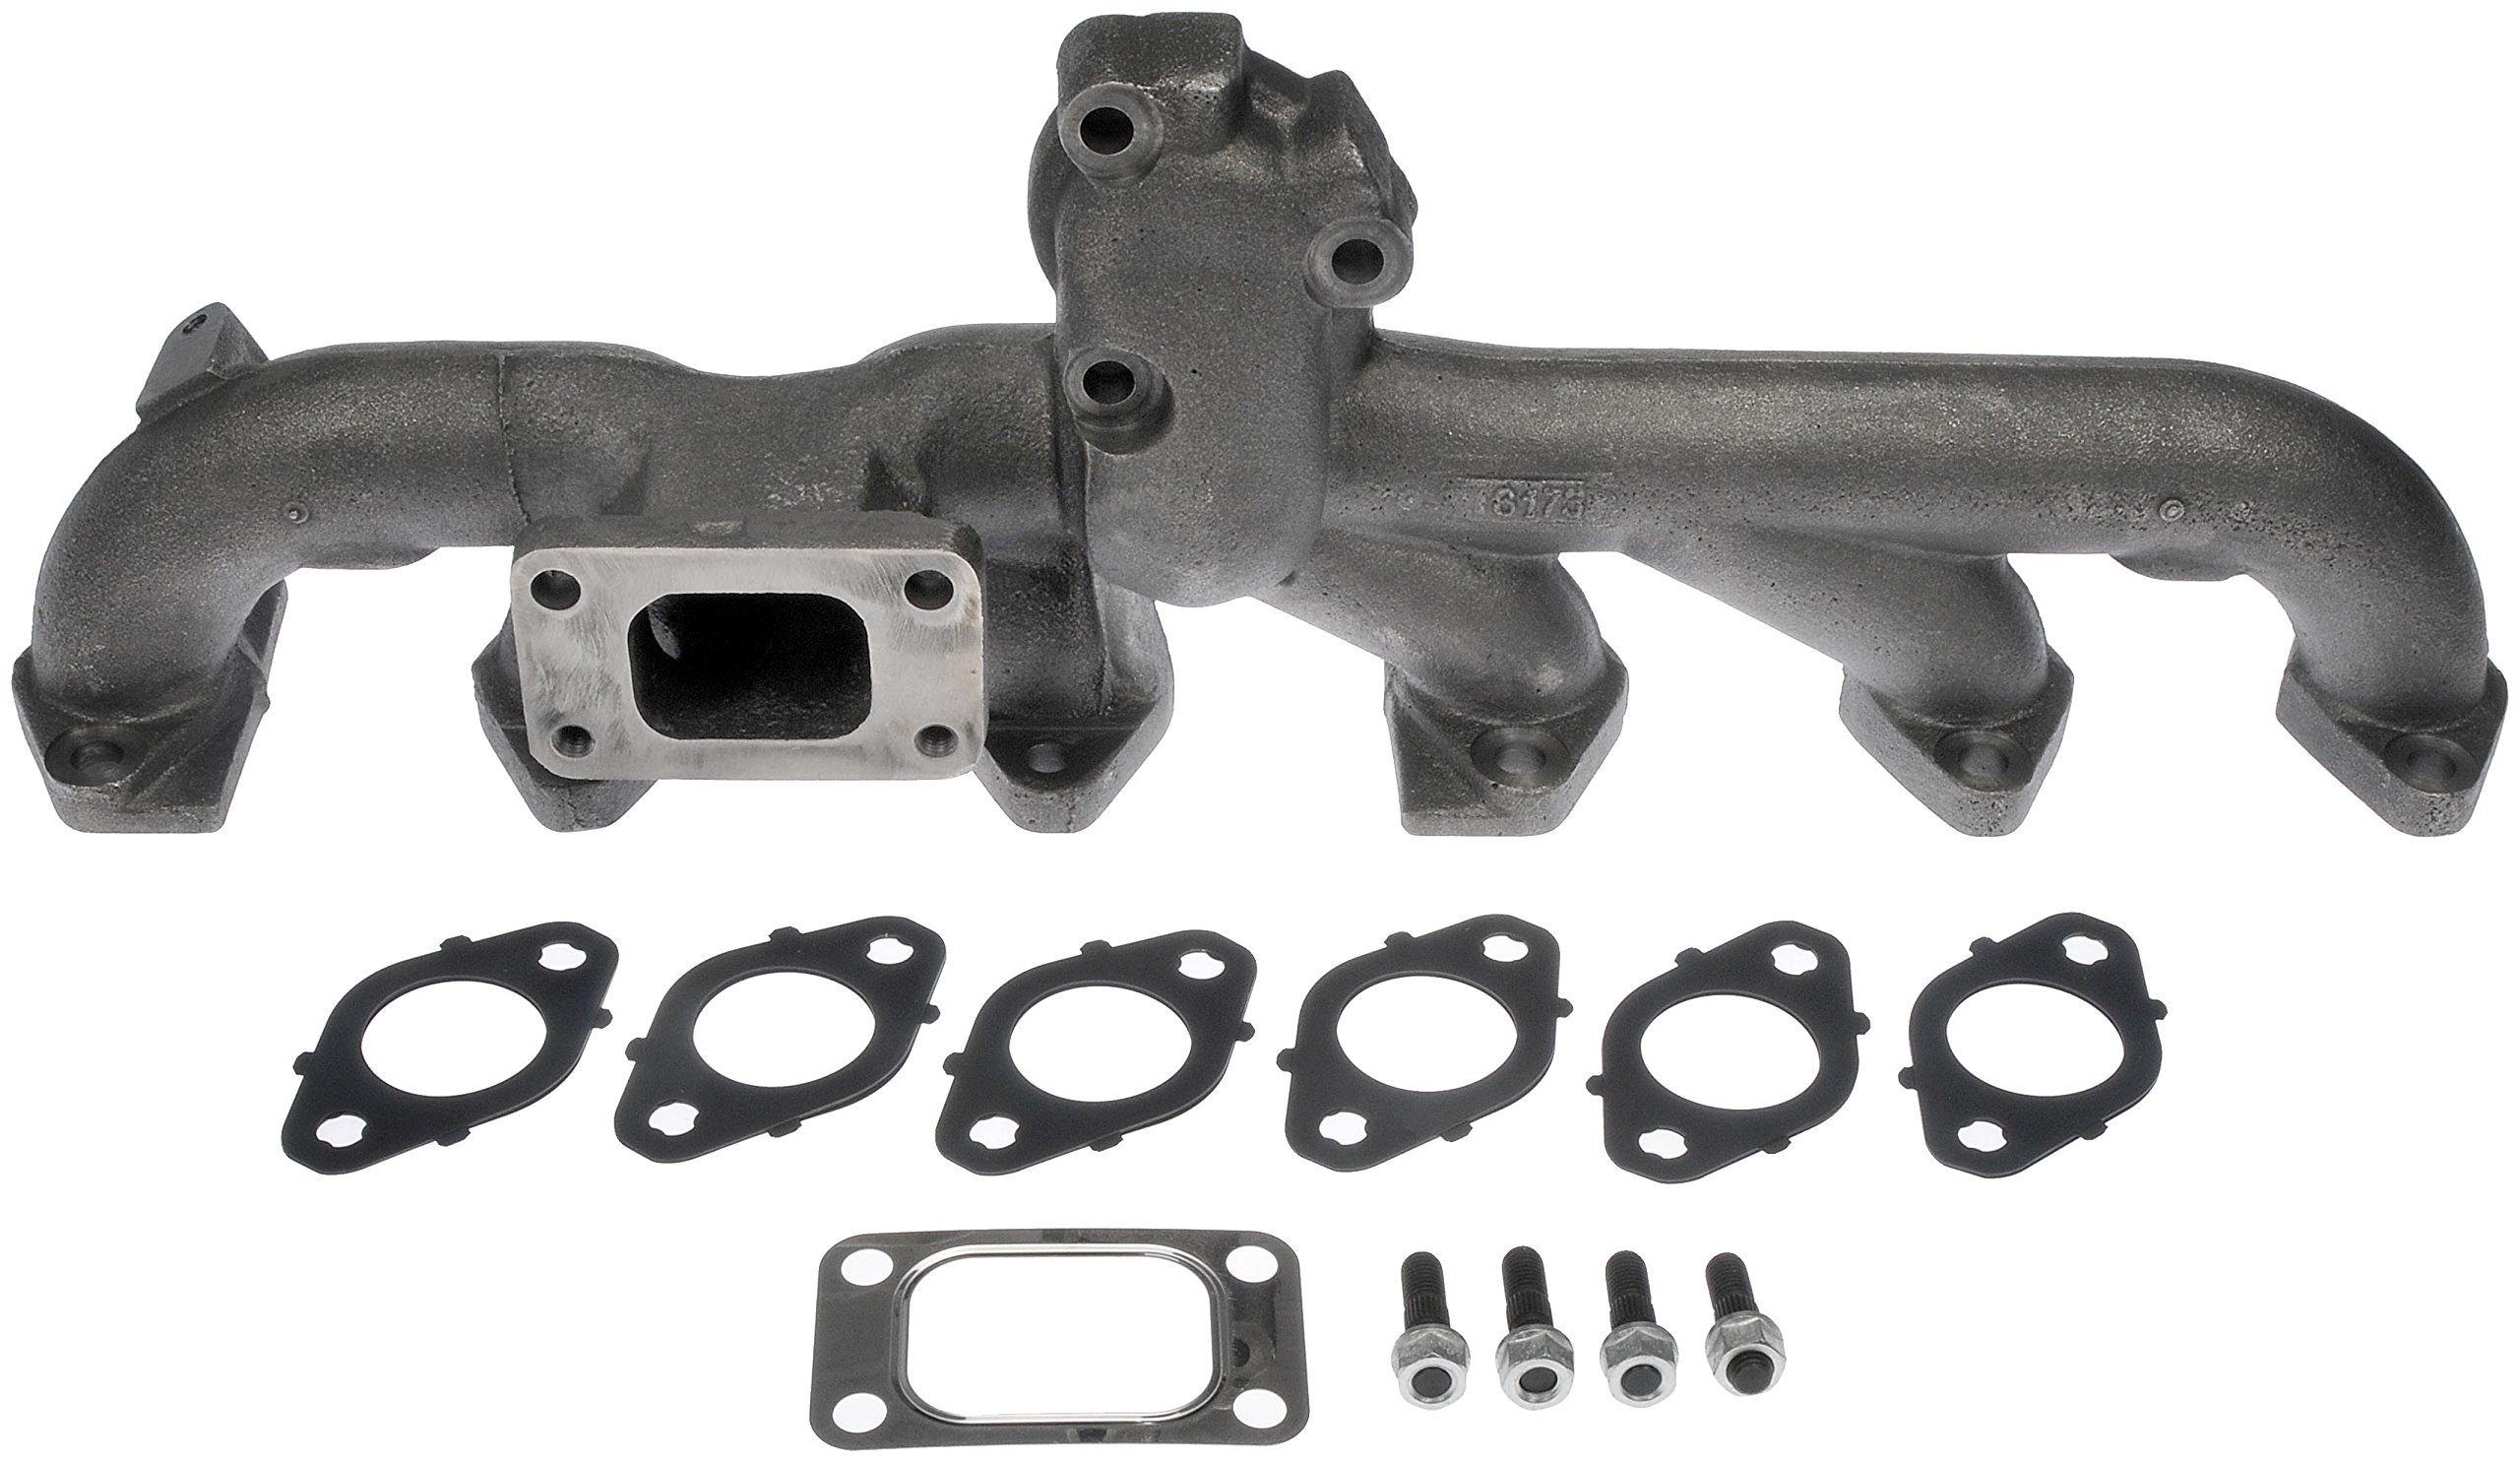 Aveland Auto for Honda Civic DX//LX D17A1 2001-05 1.7L Stainless Steel Exhaust Header Manifold 3-7 Days Delivery